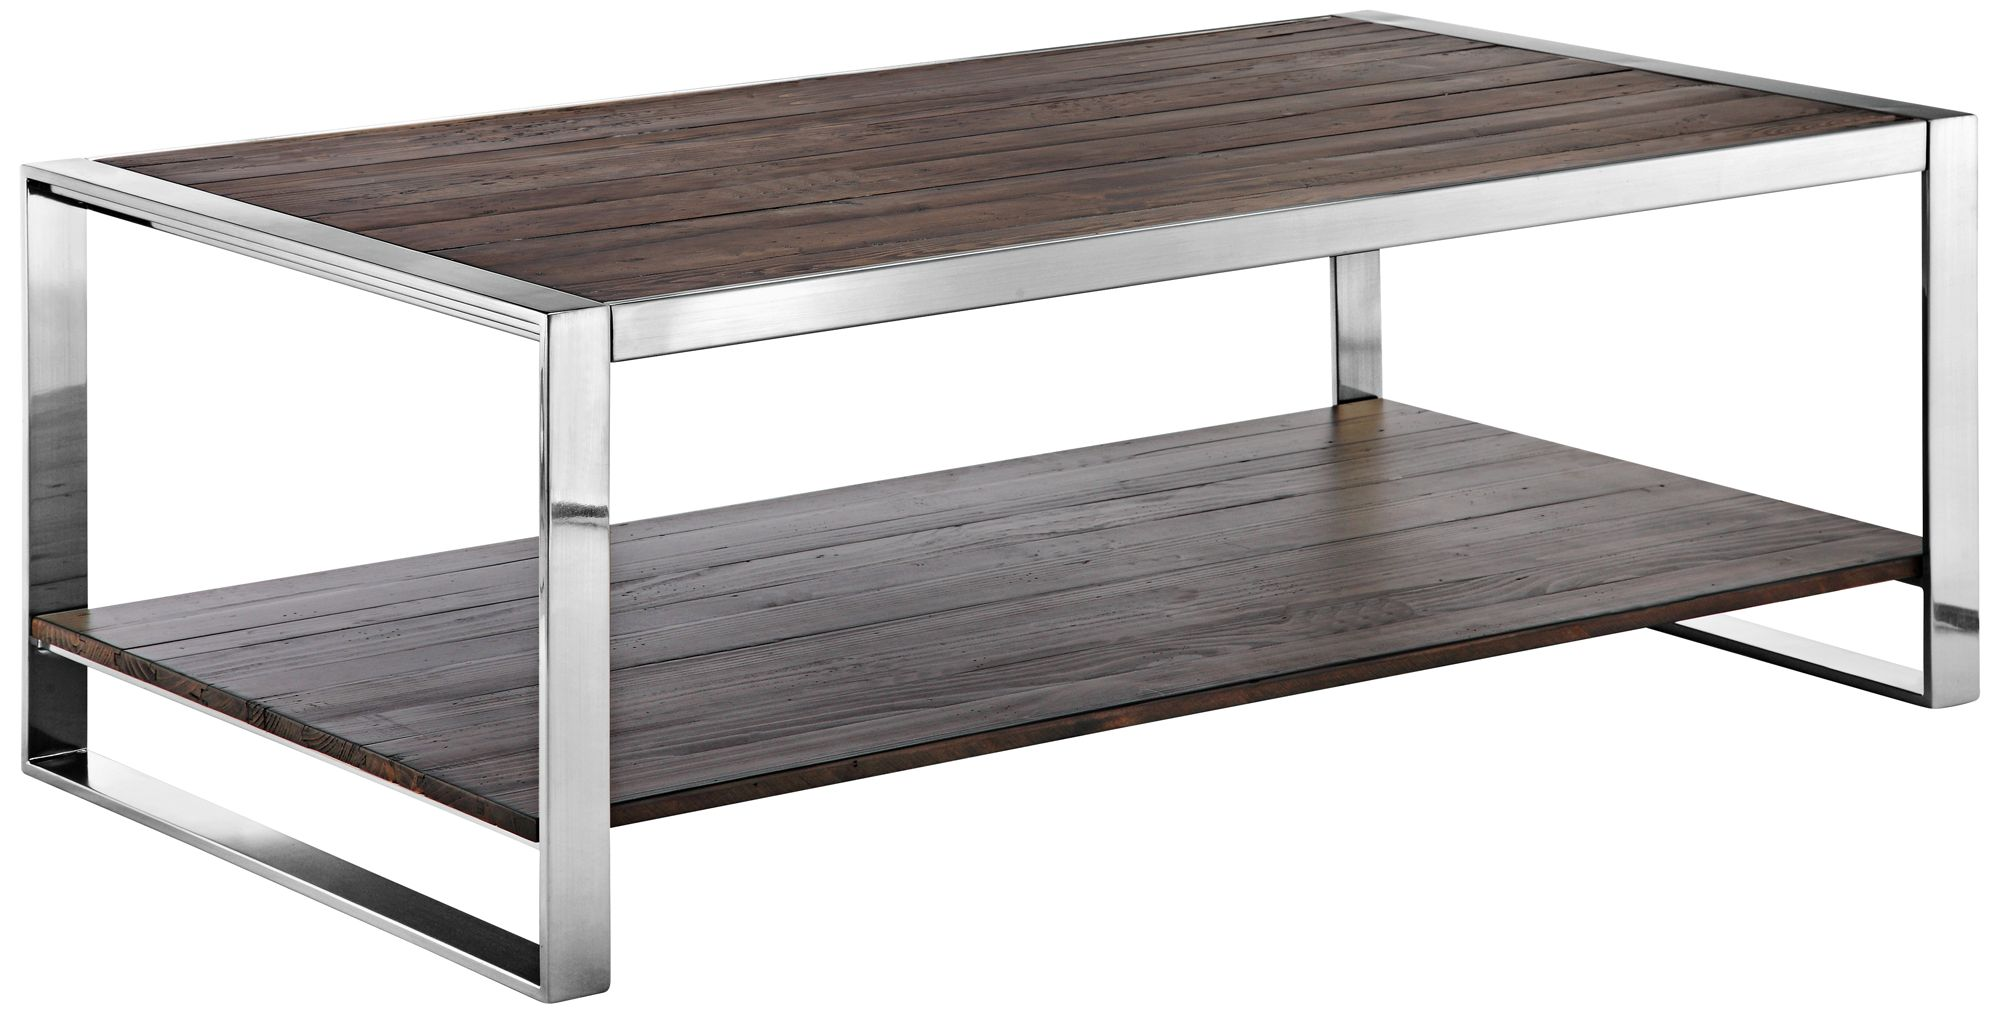 Lawson Reclaimed Dark Pine And Brushed Nickel Cocktail